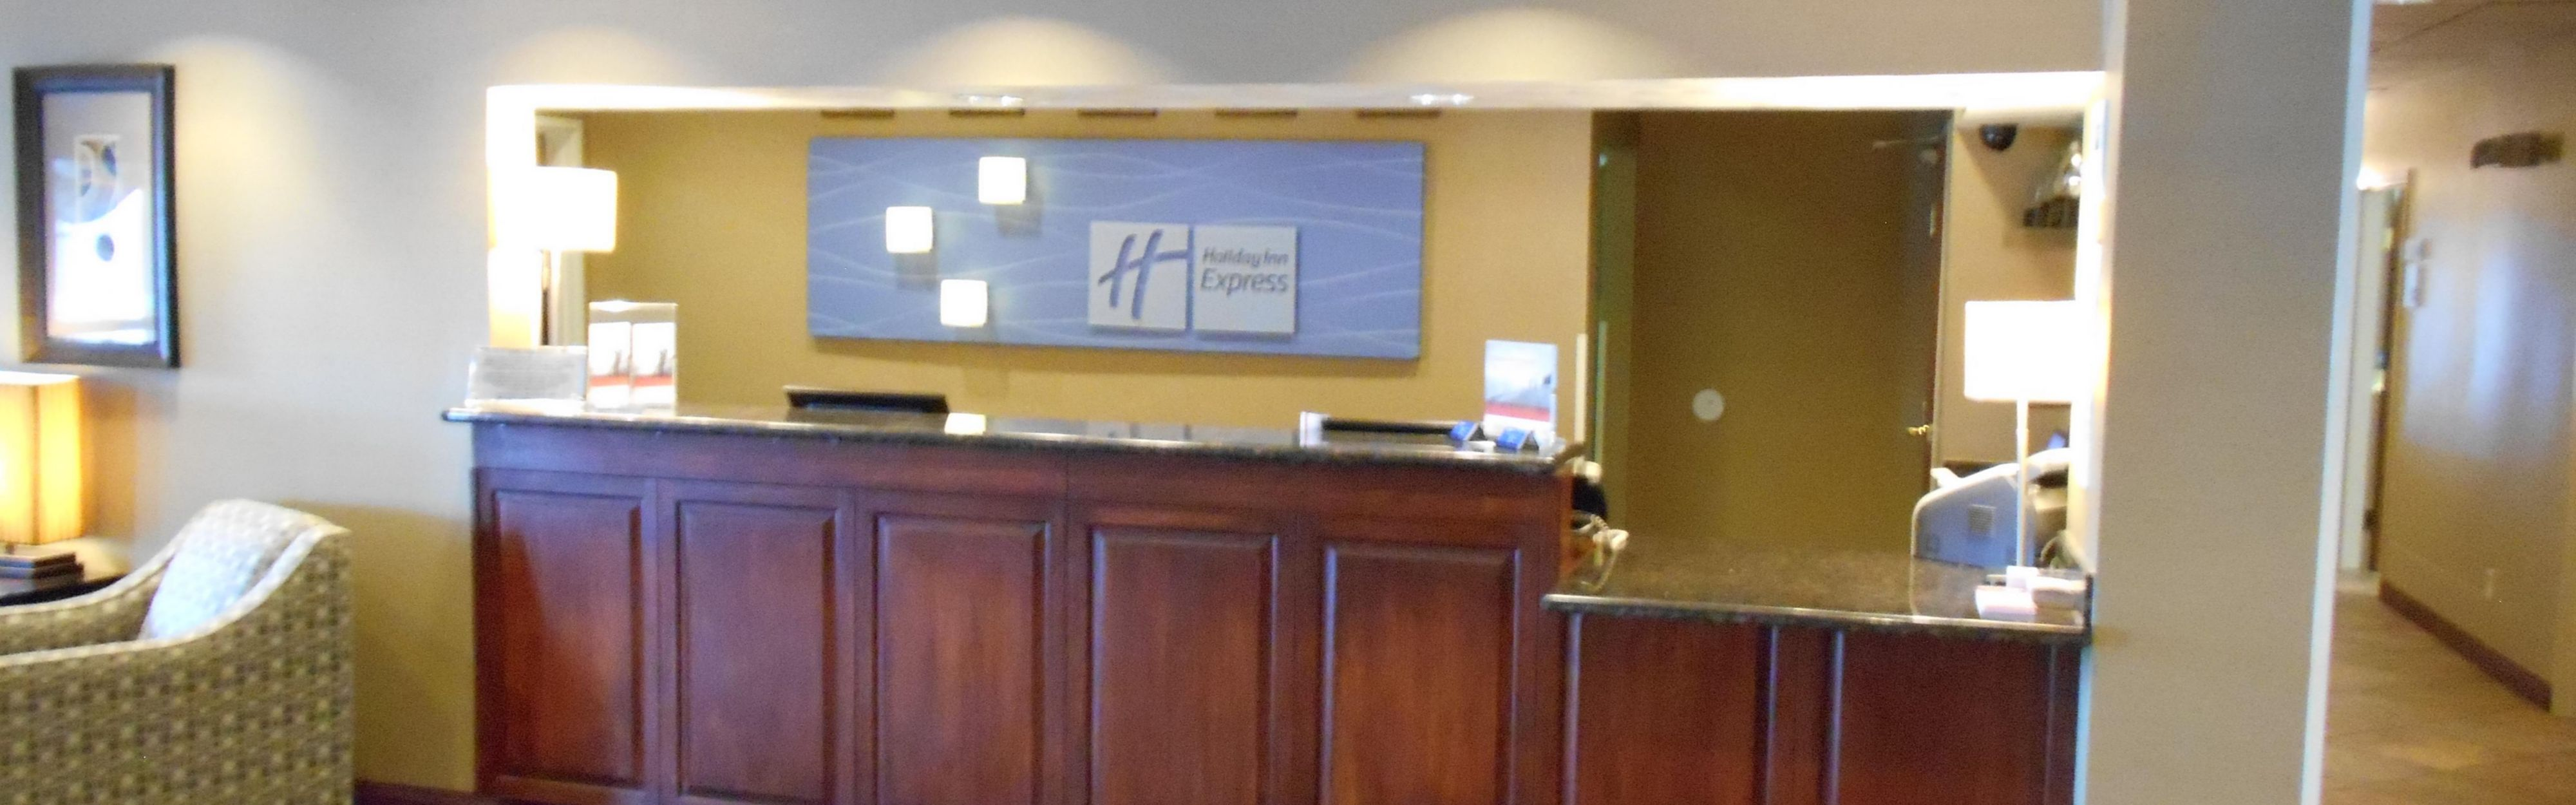 Stunning Hotels Near Ruby Memorial Hospital Morgantown Wv With